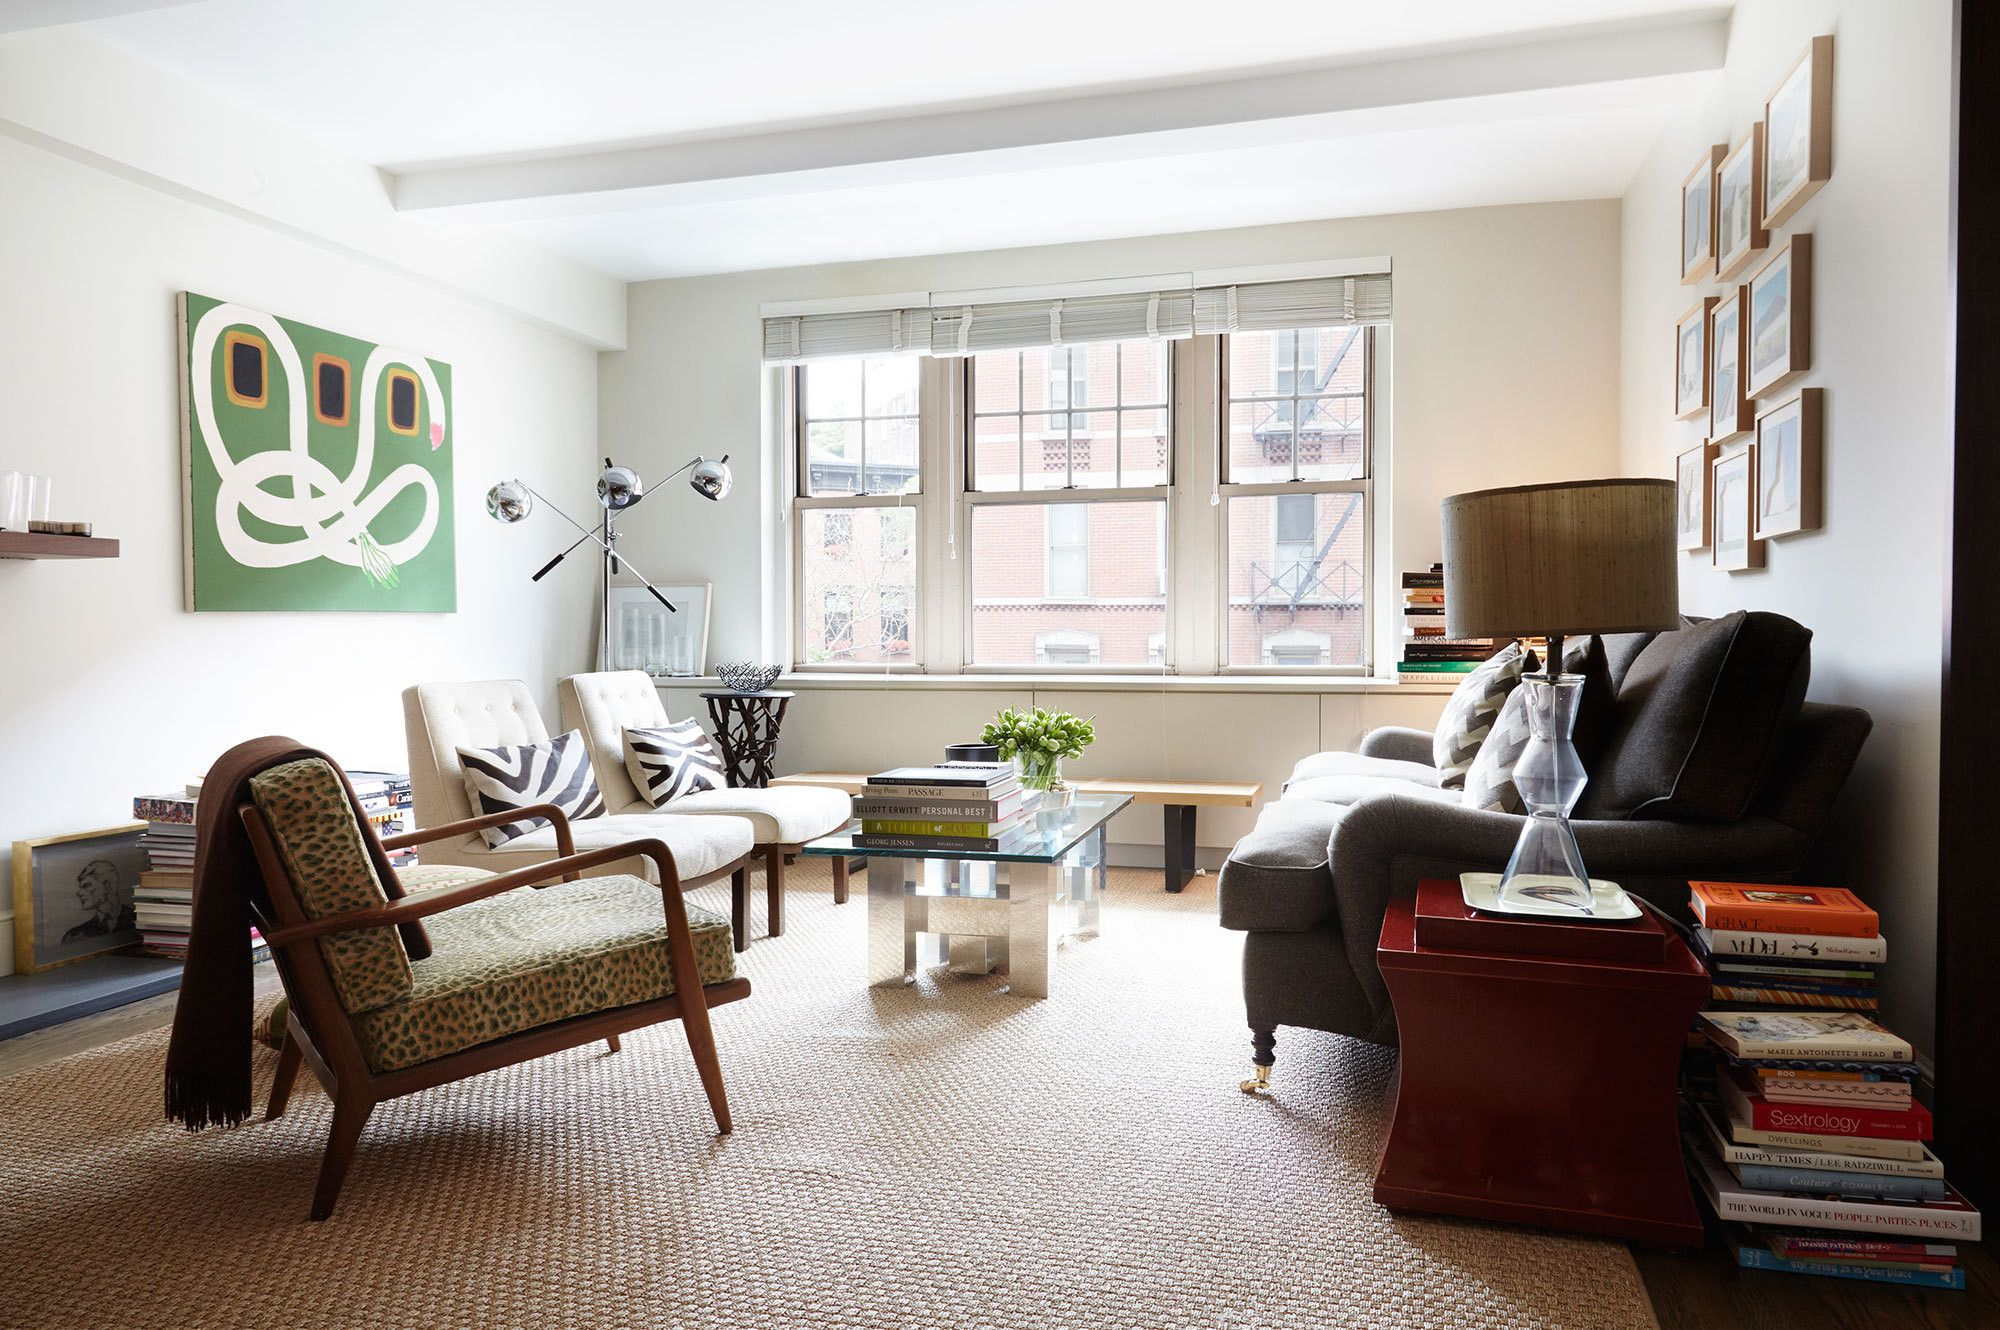 Peter somus new york city apartment apartments living rooms and room